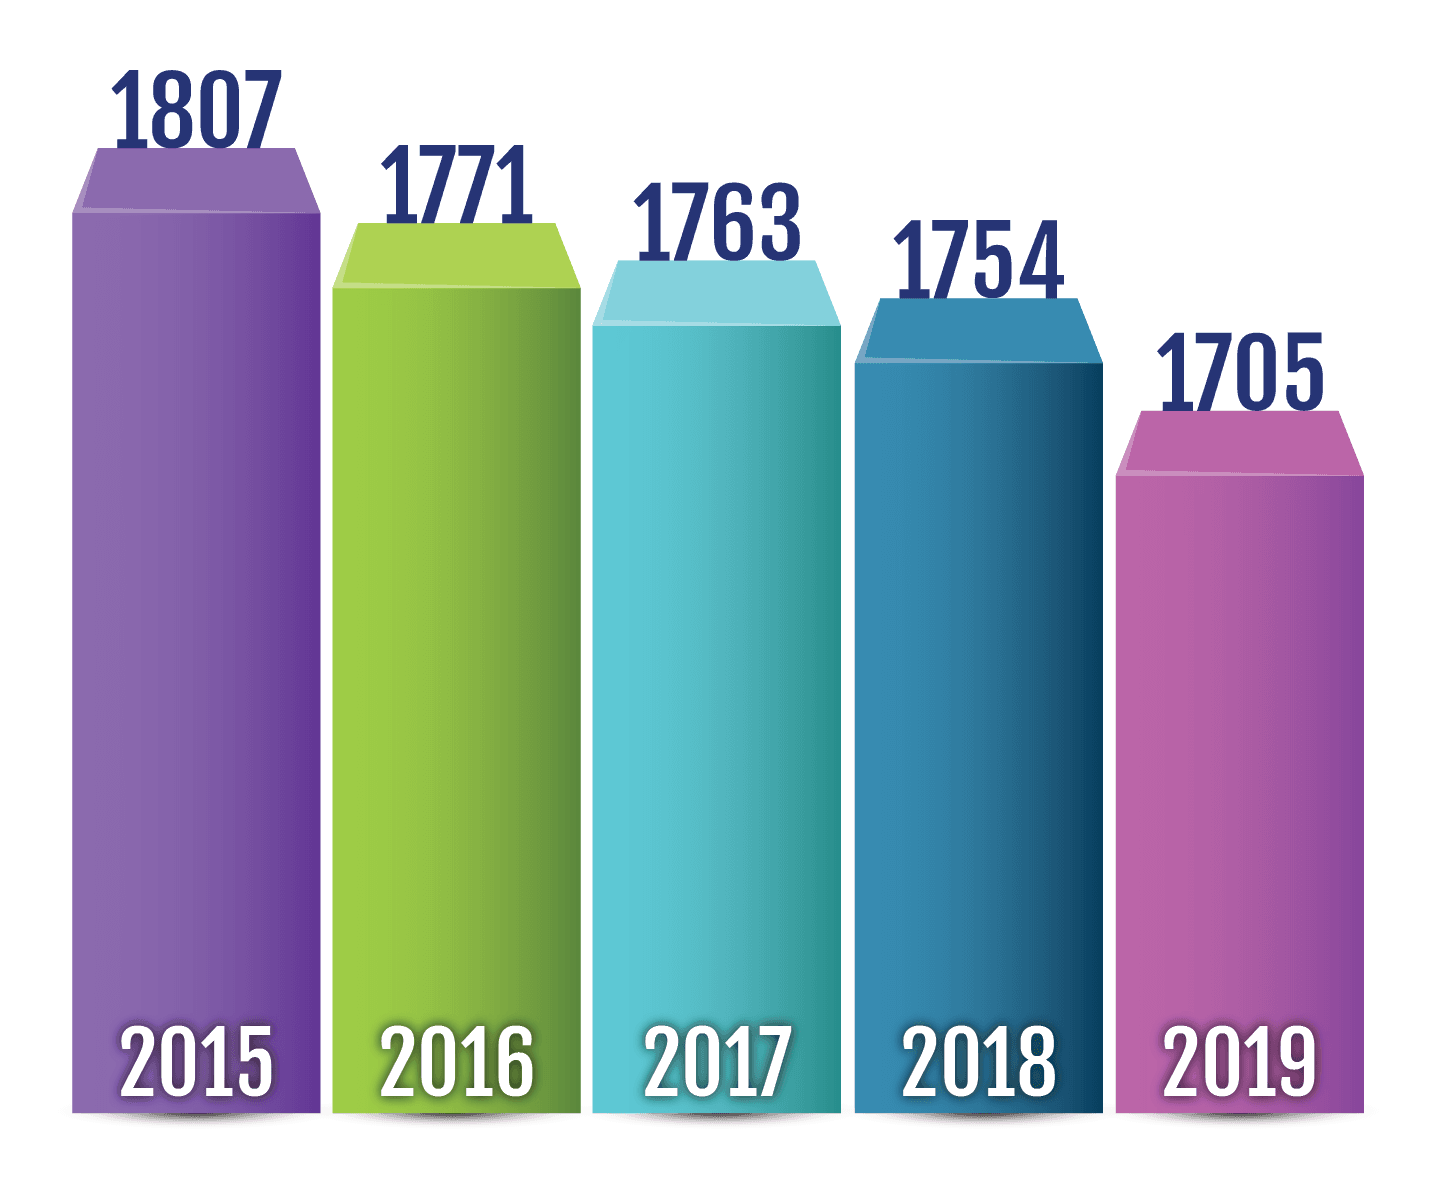 Part 1 Crimes By Year